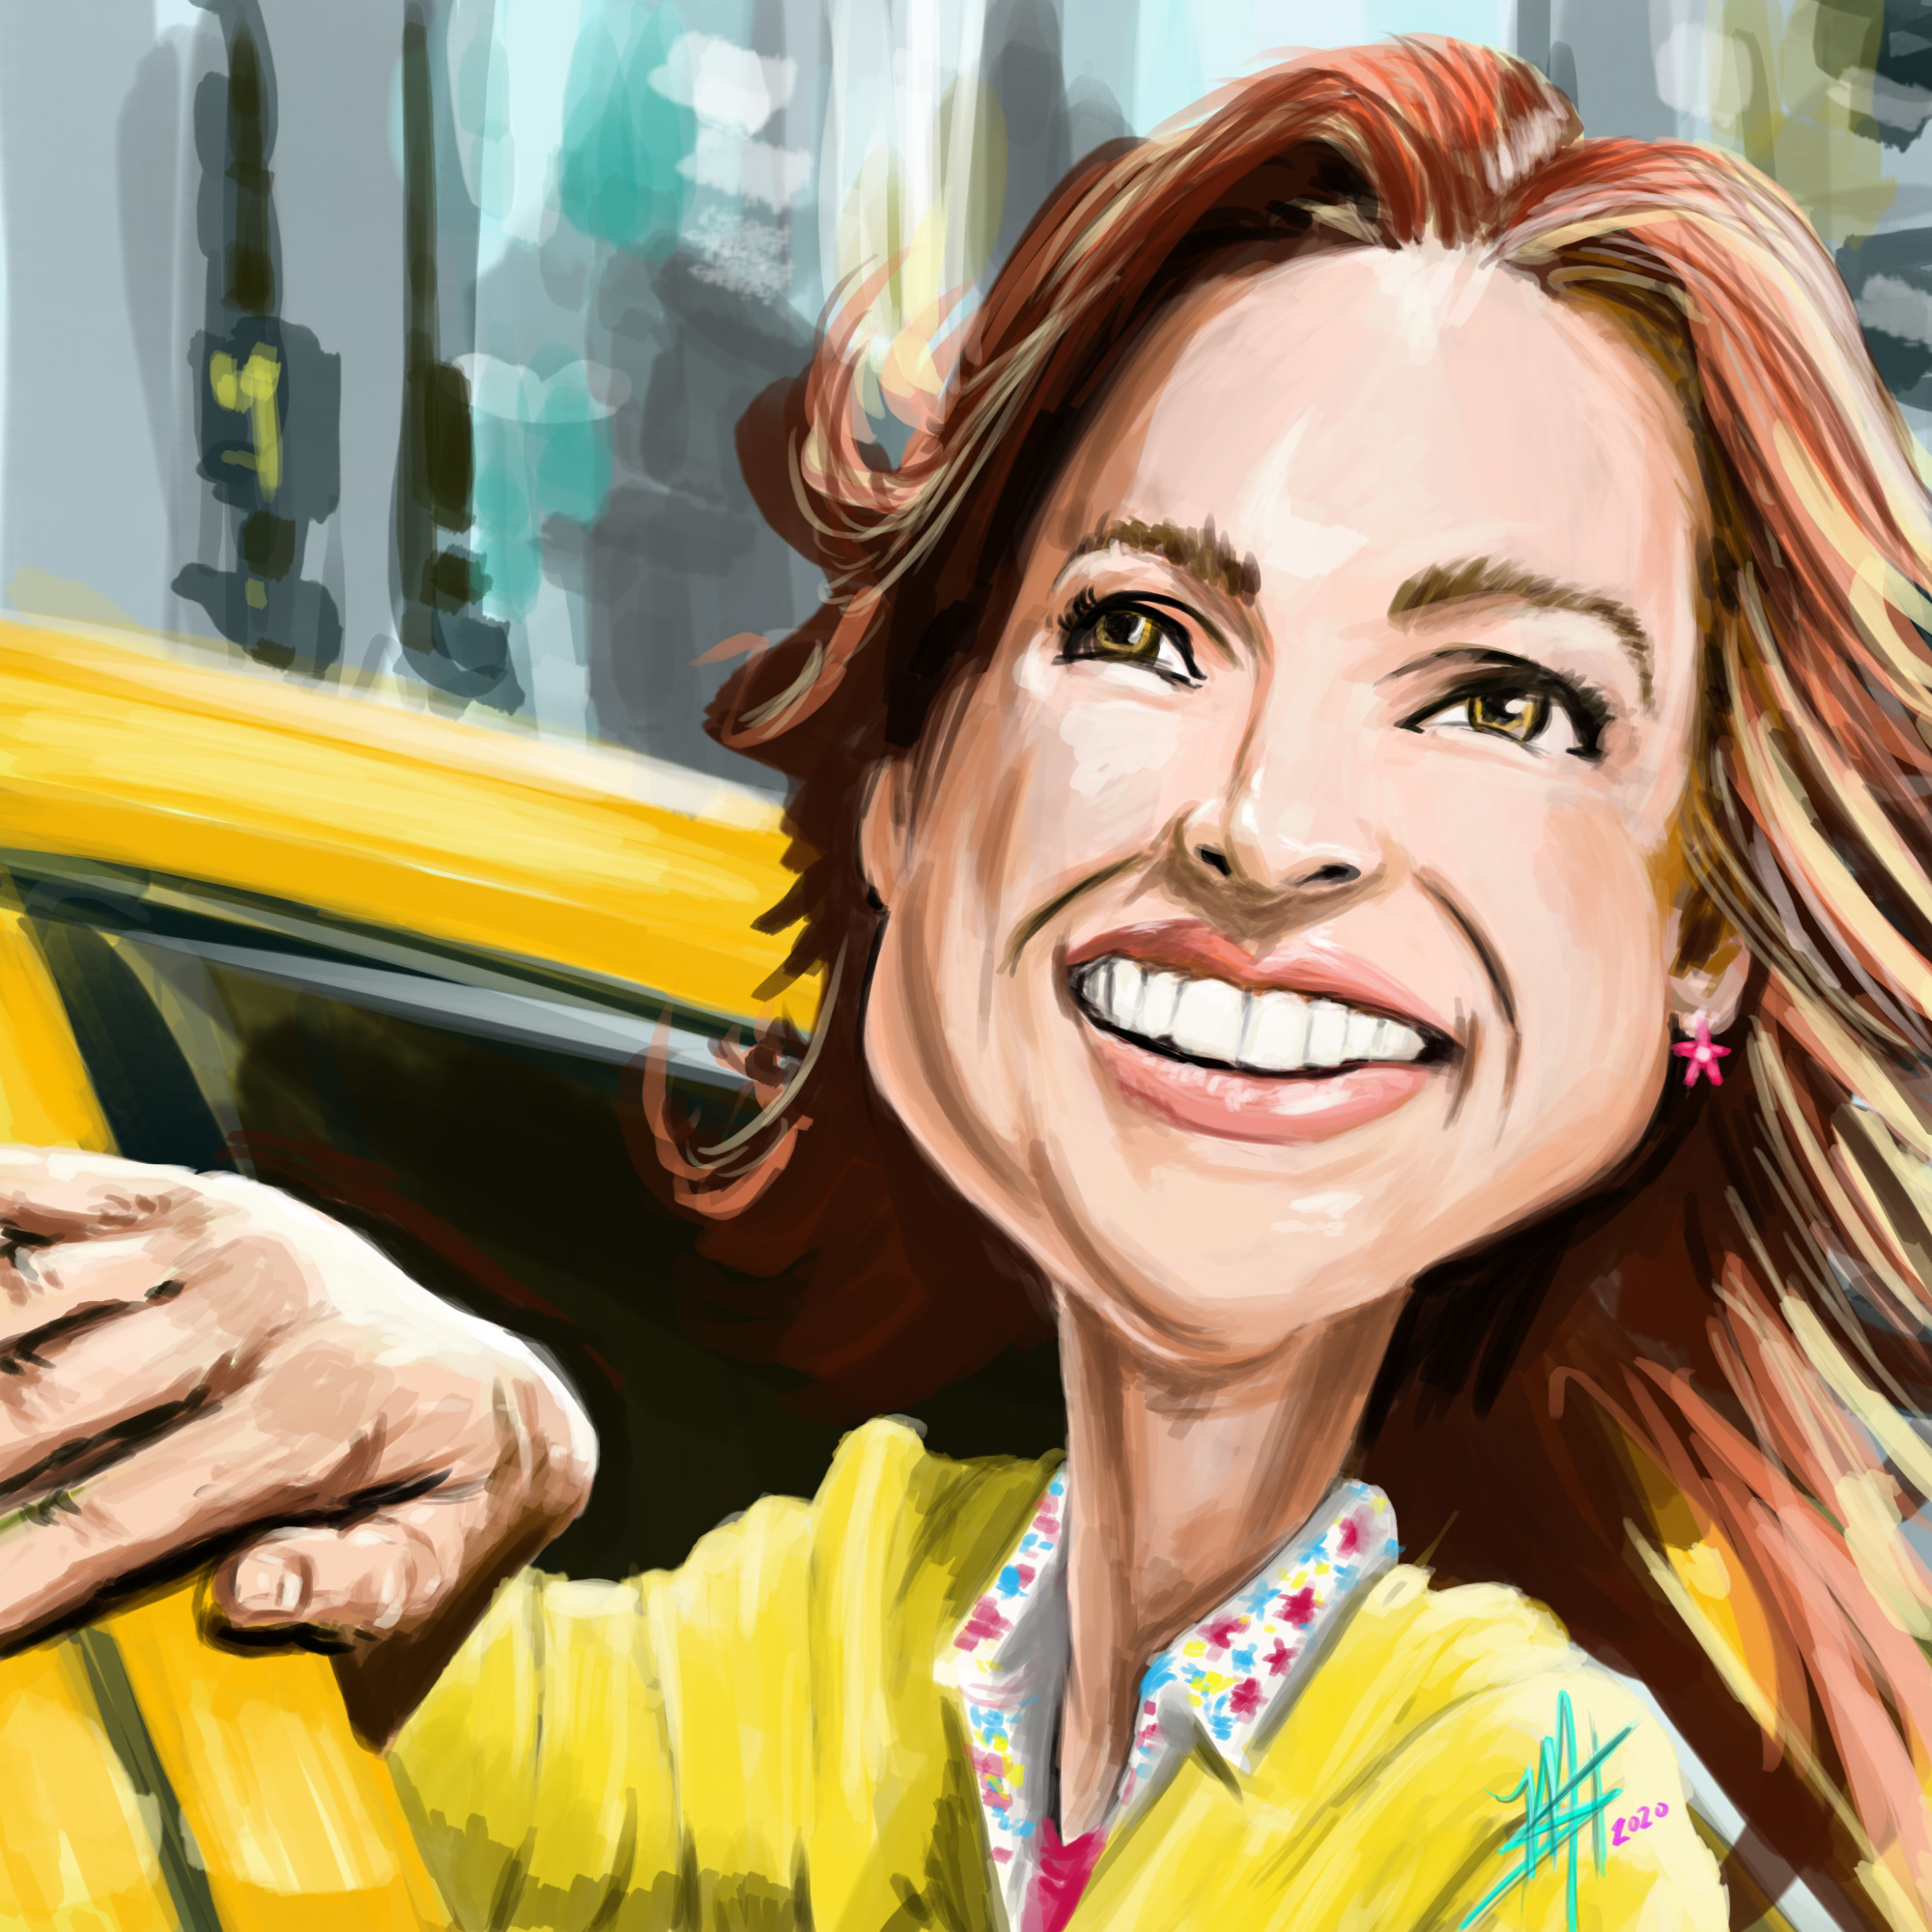 KimmySchmidt Digital Paint